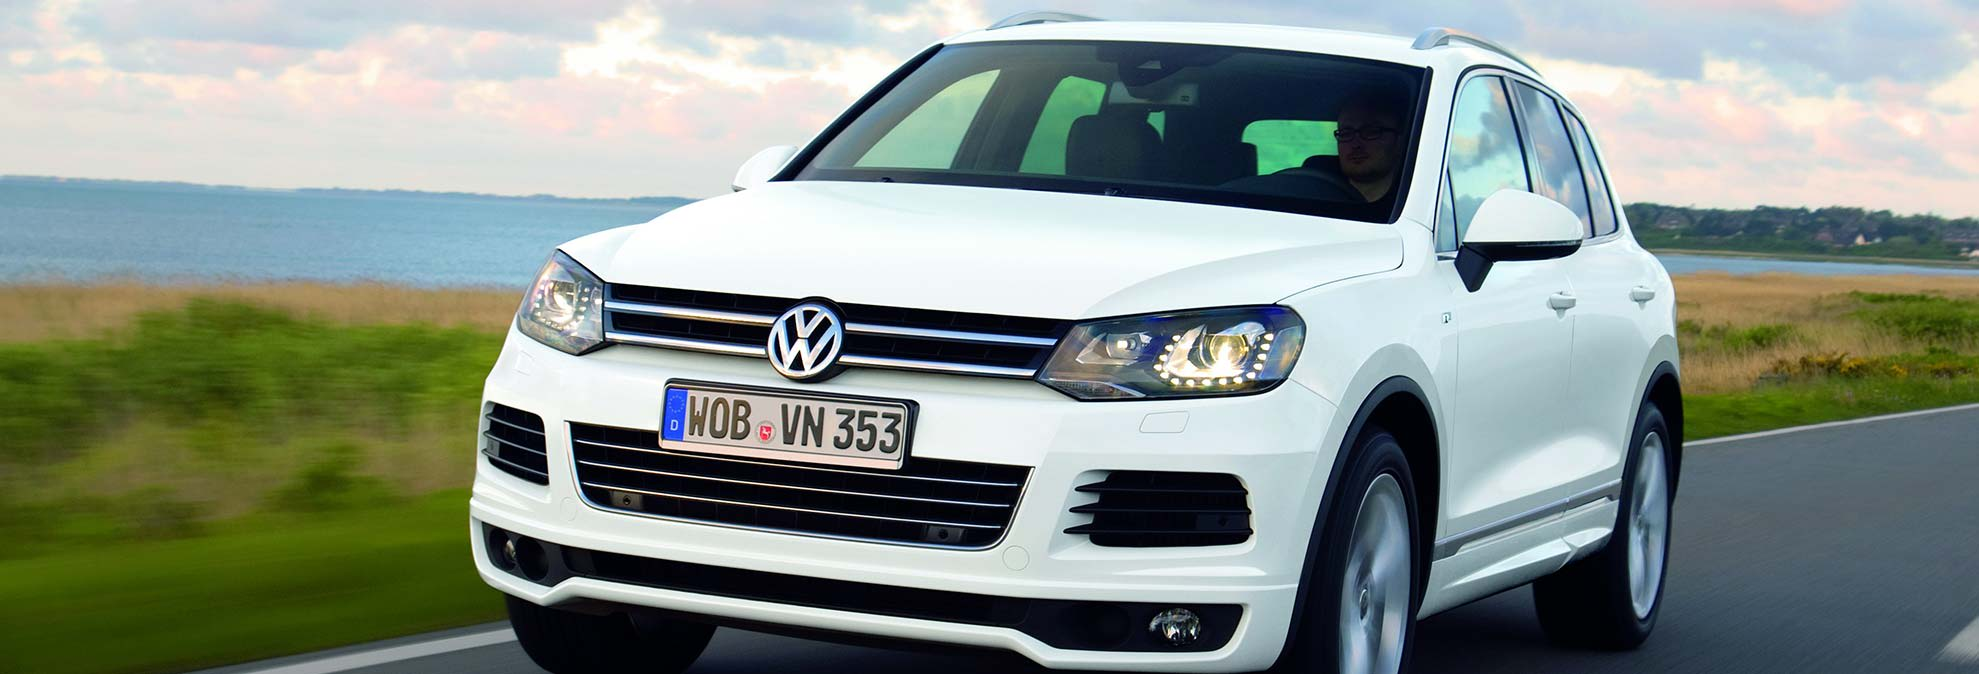 Audi and VW Offer Discounts on Fixed Diesel SUVs - Consumer Reports